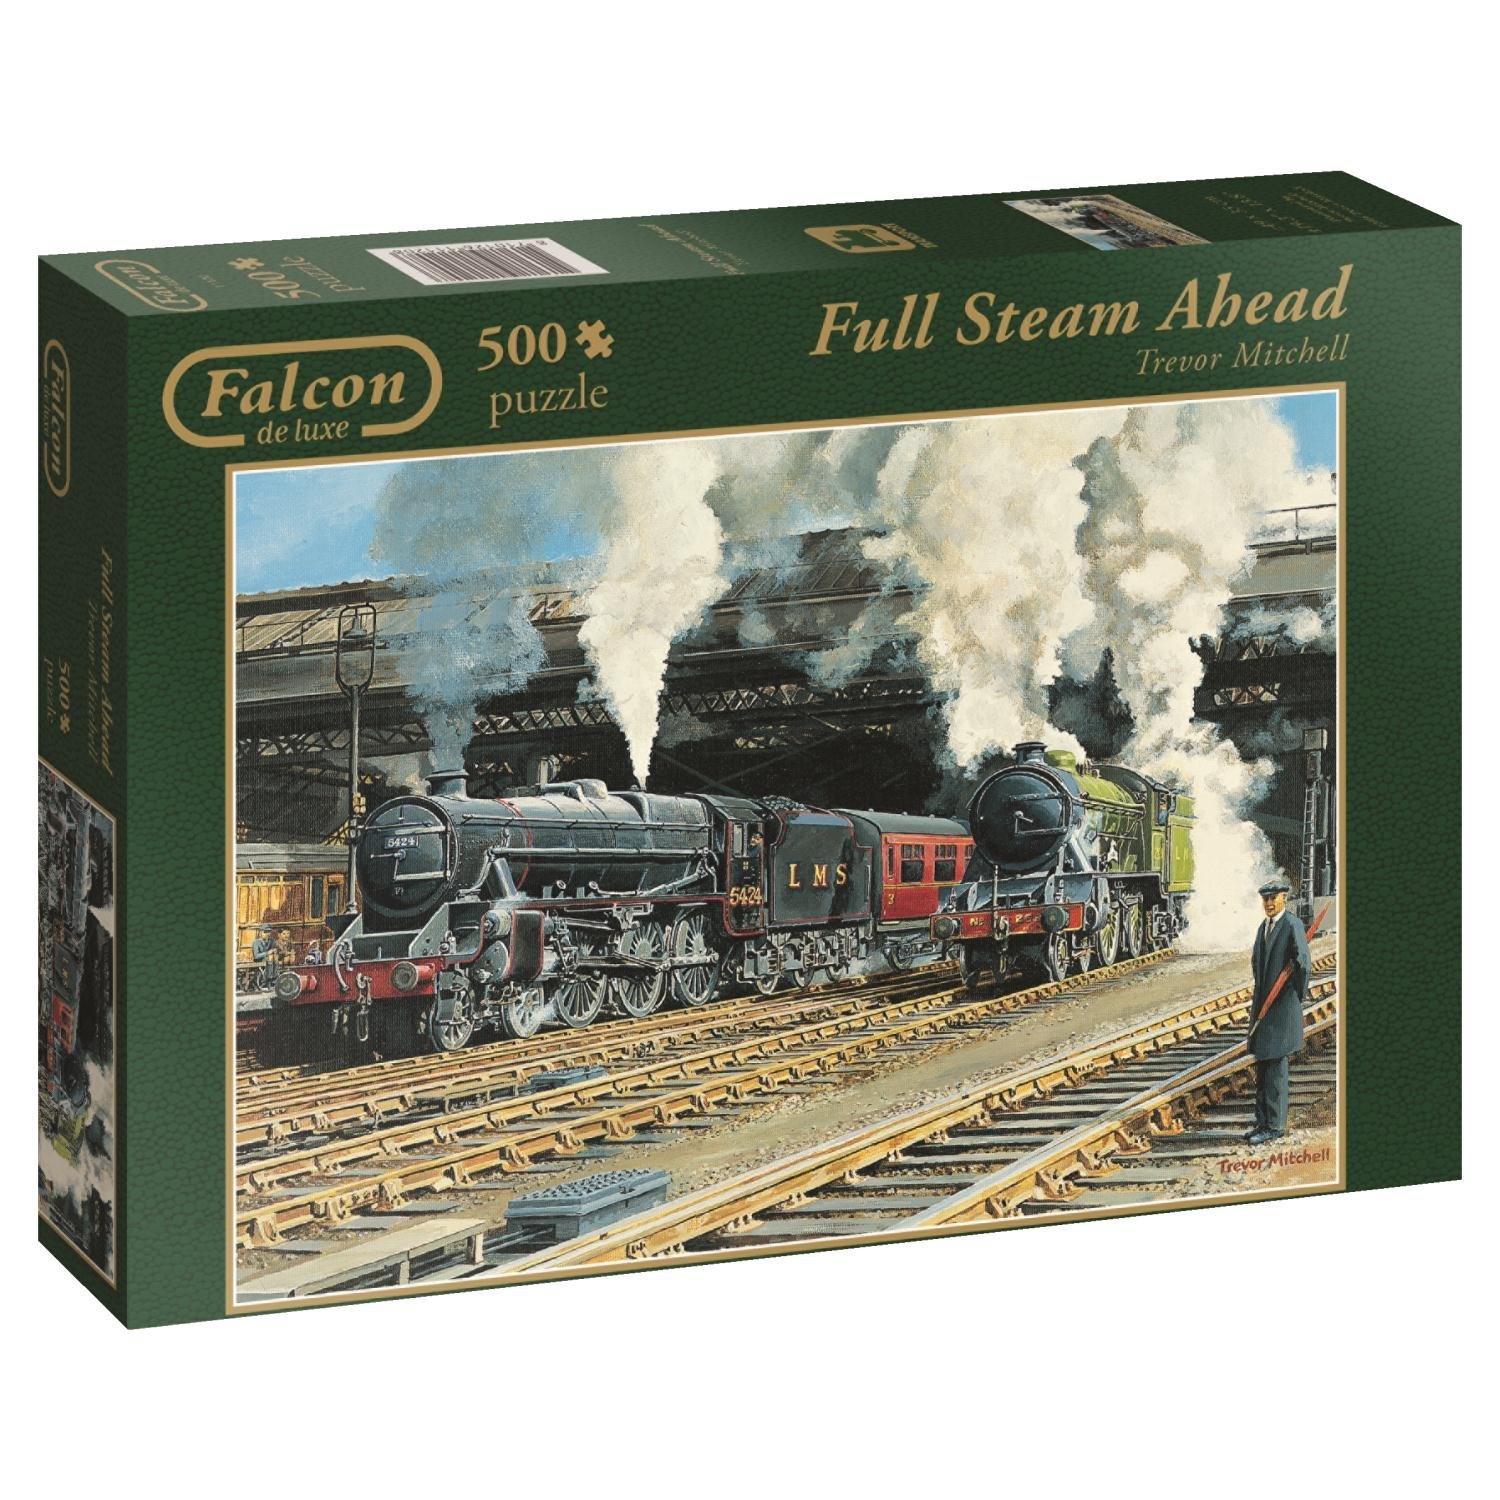 Falcon De Luxe, Full Steam Ahead, jumbo 500pc Jigsaw Puzzle